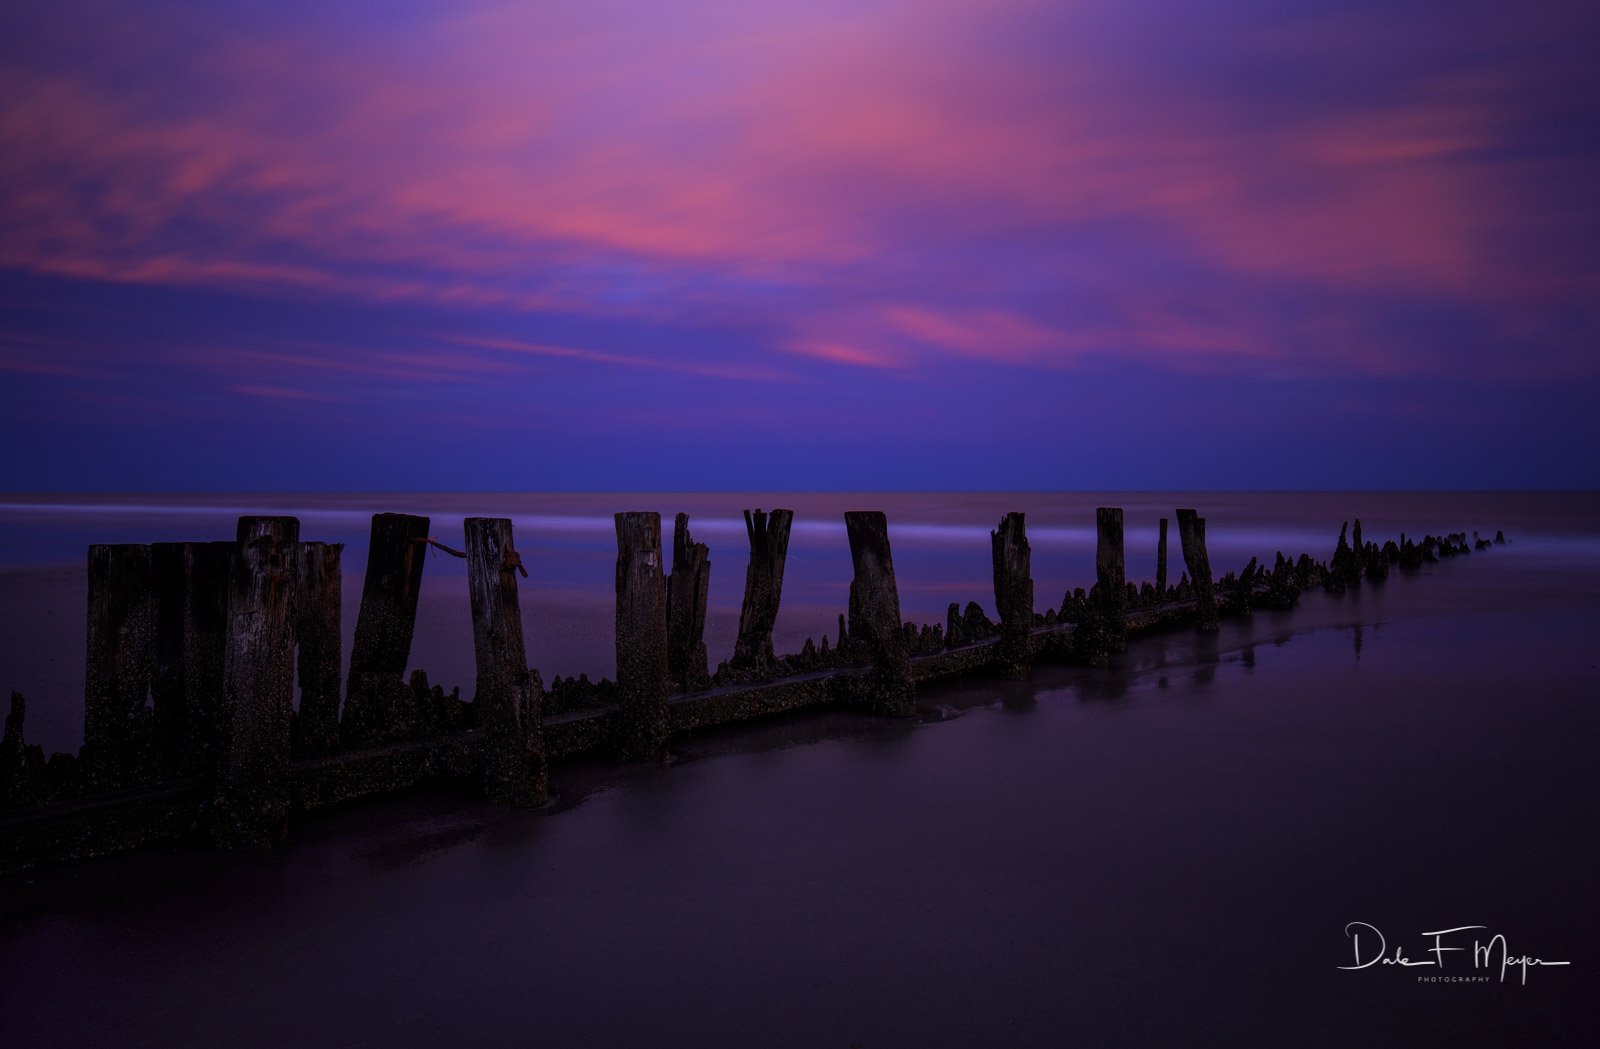 Folly Beach,coastal,low tide,piers,worn jetty, photo